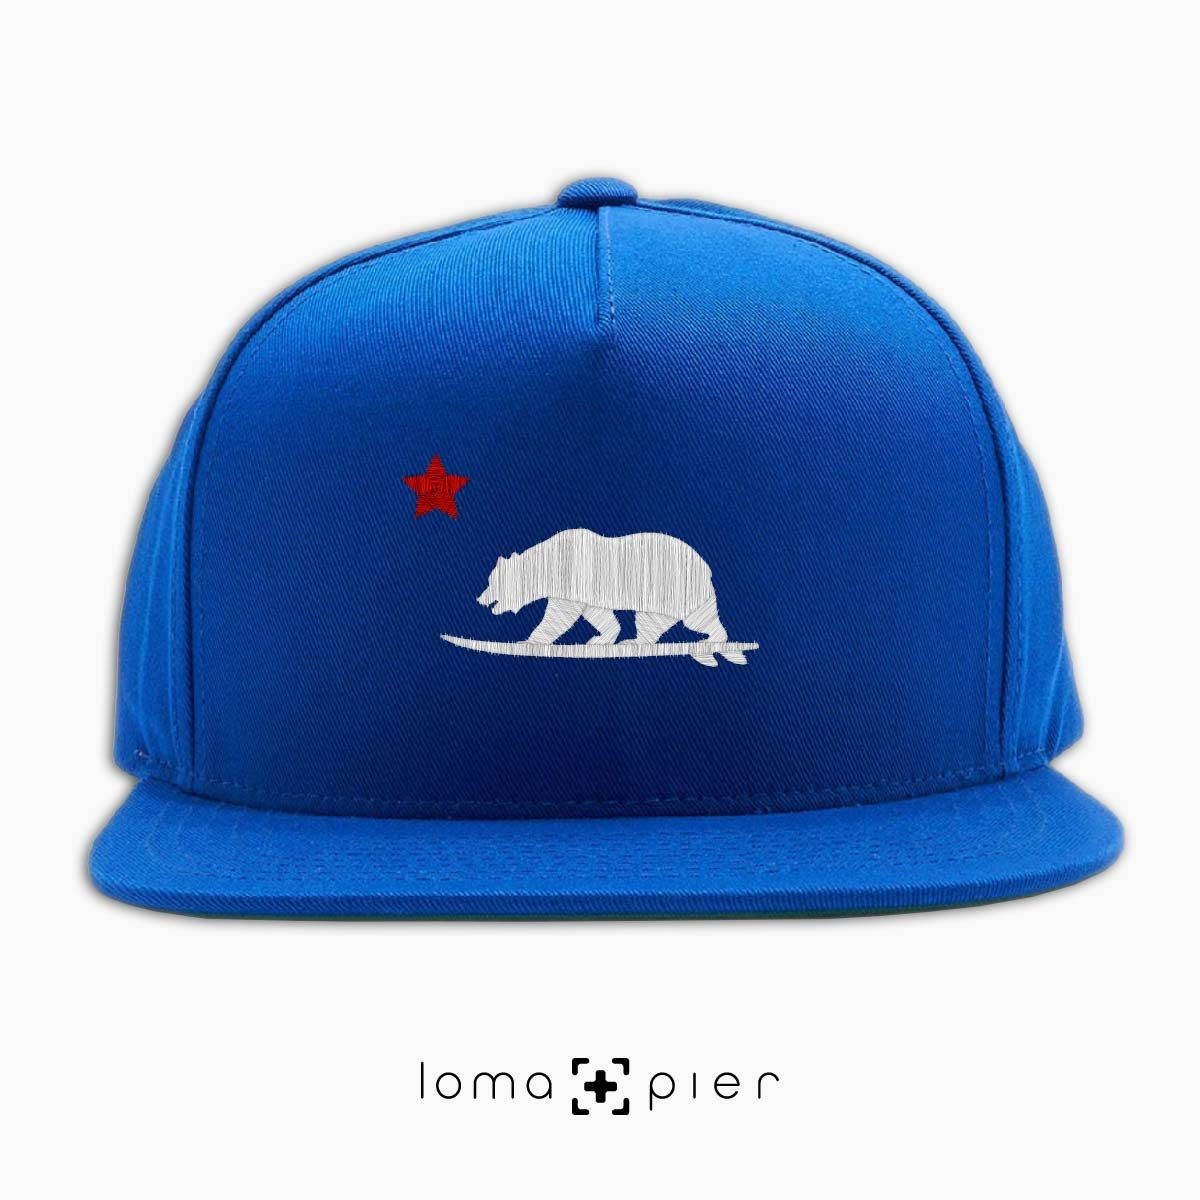 CALI SURFER icon embroidered on a royal blue classic snapback hat with white and red thread by loma+pier hat store